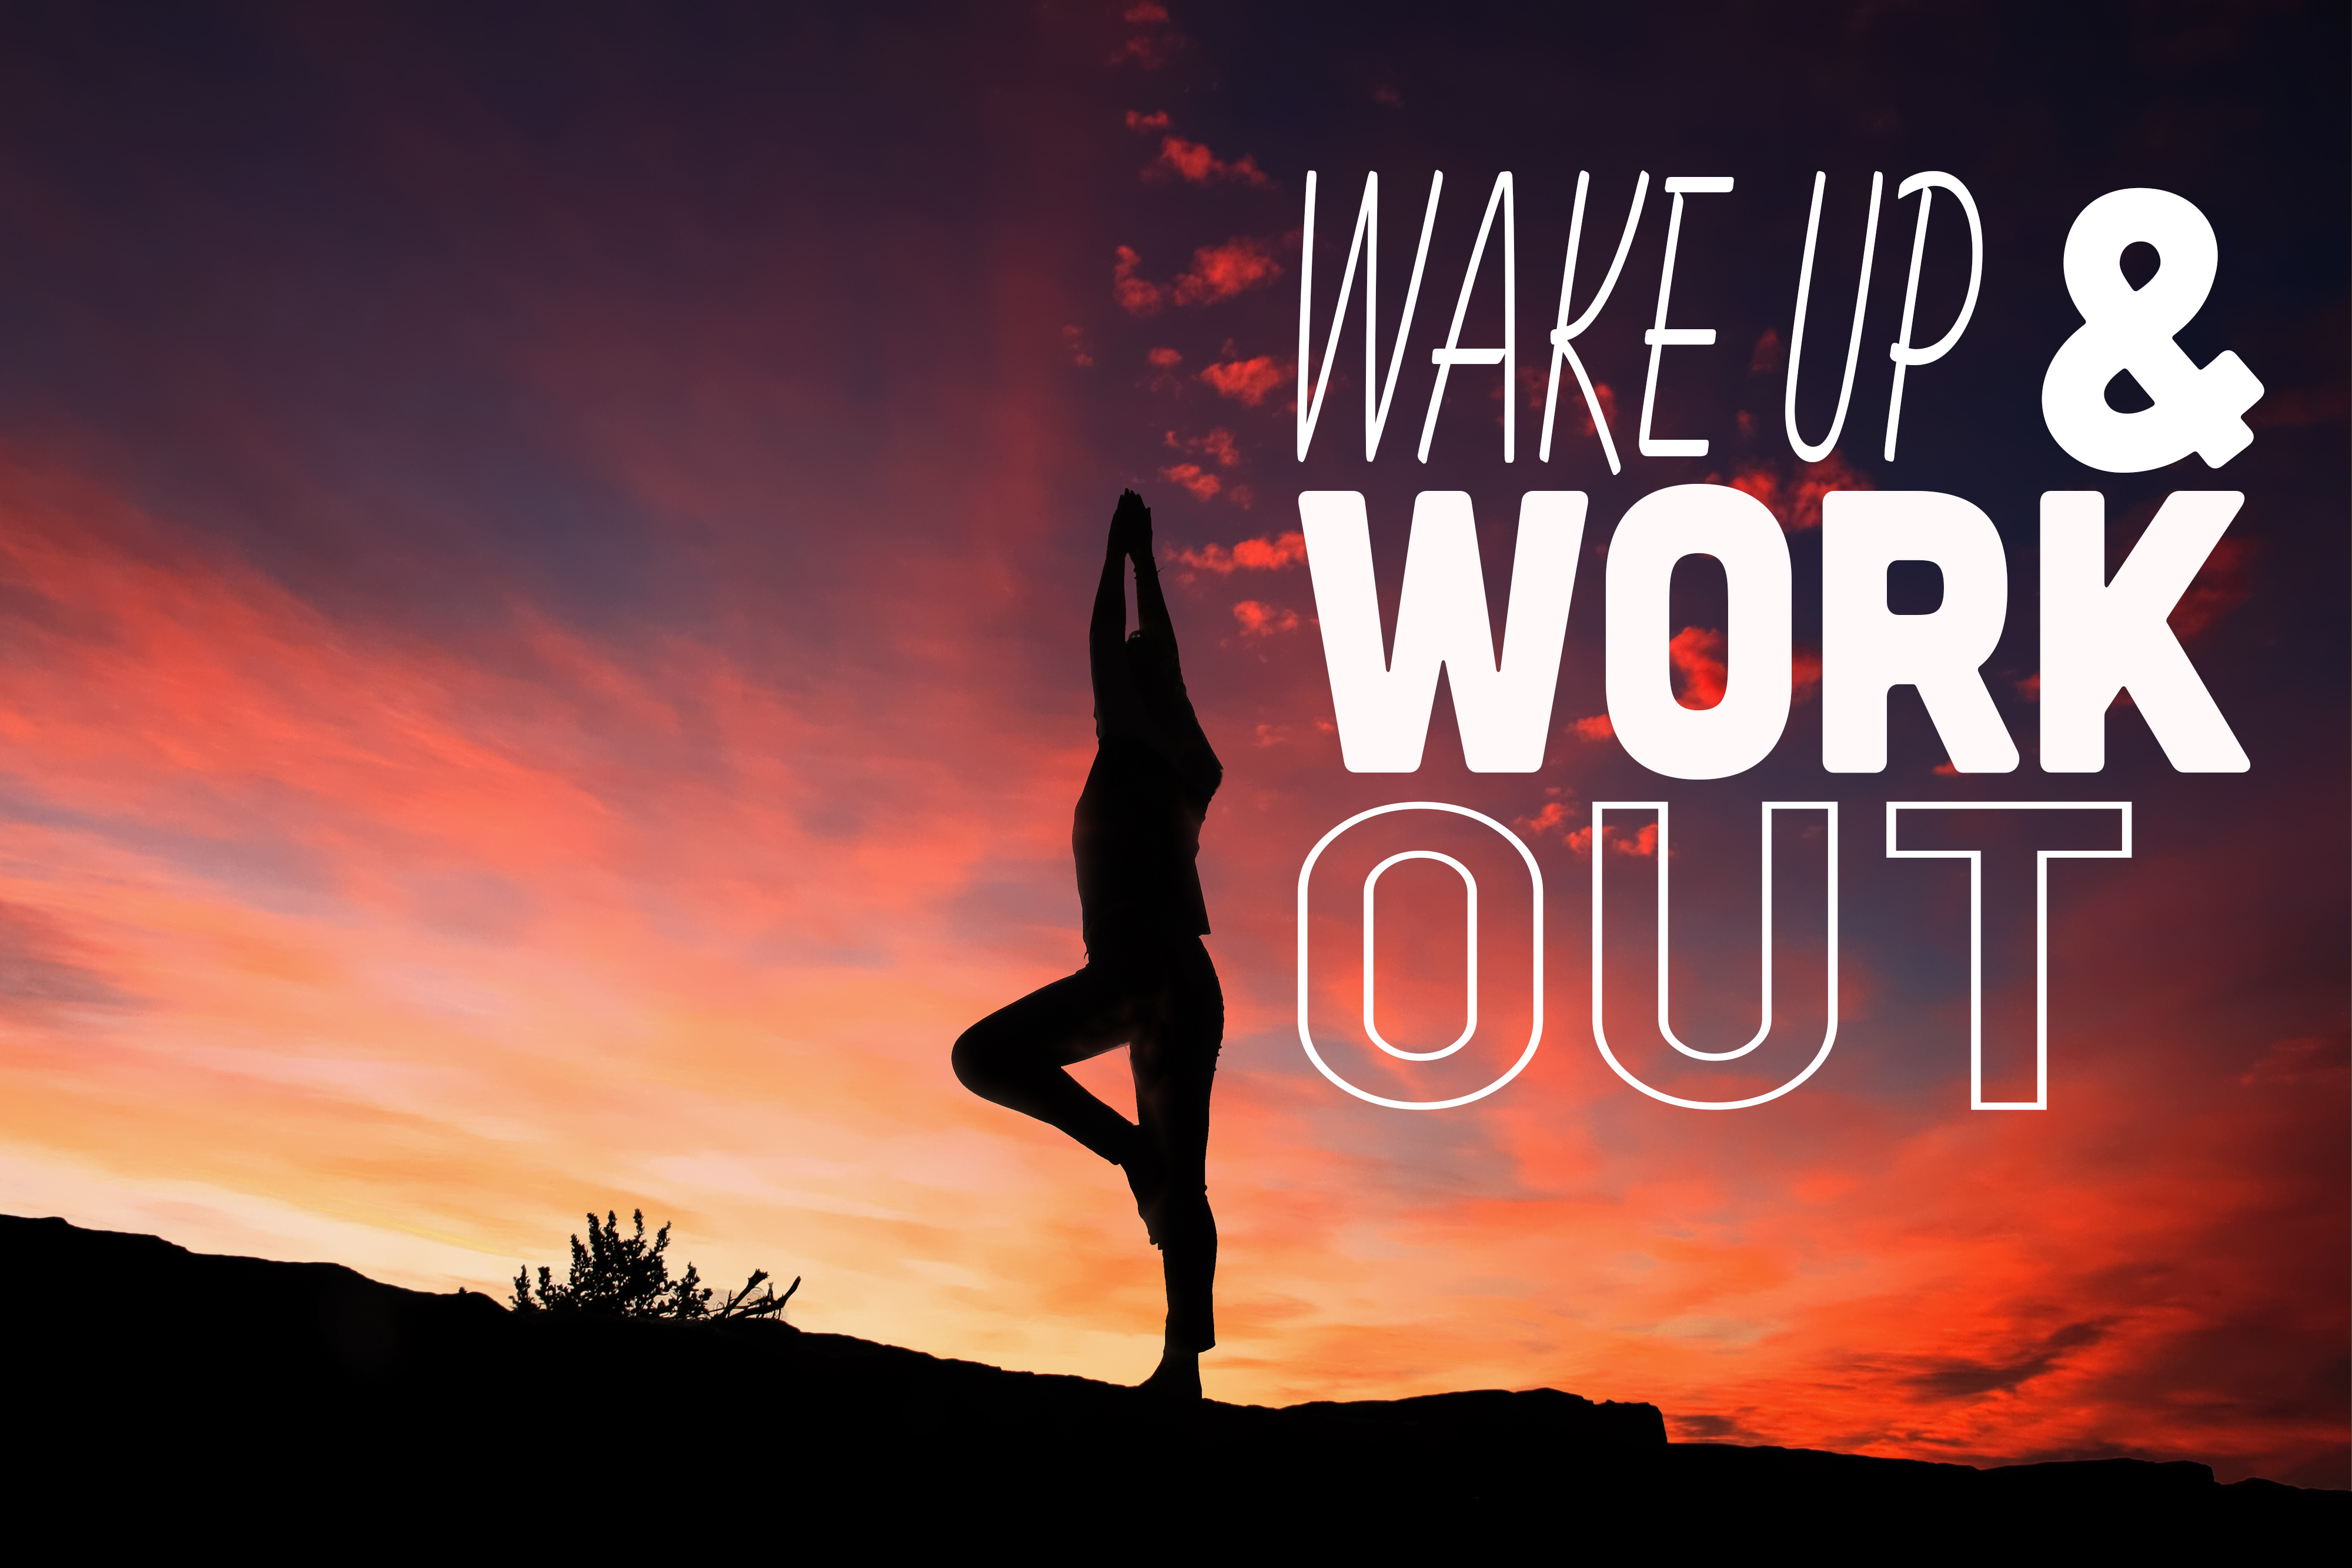 Fitness Wallpaper Designs To Help You Stay Motivated HD Wallpapers Download Free Images Wallpaper [1000image.com]